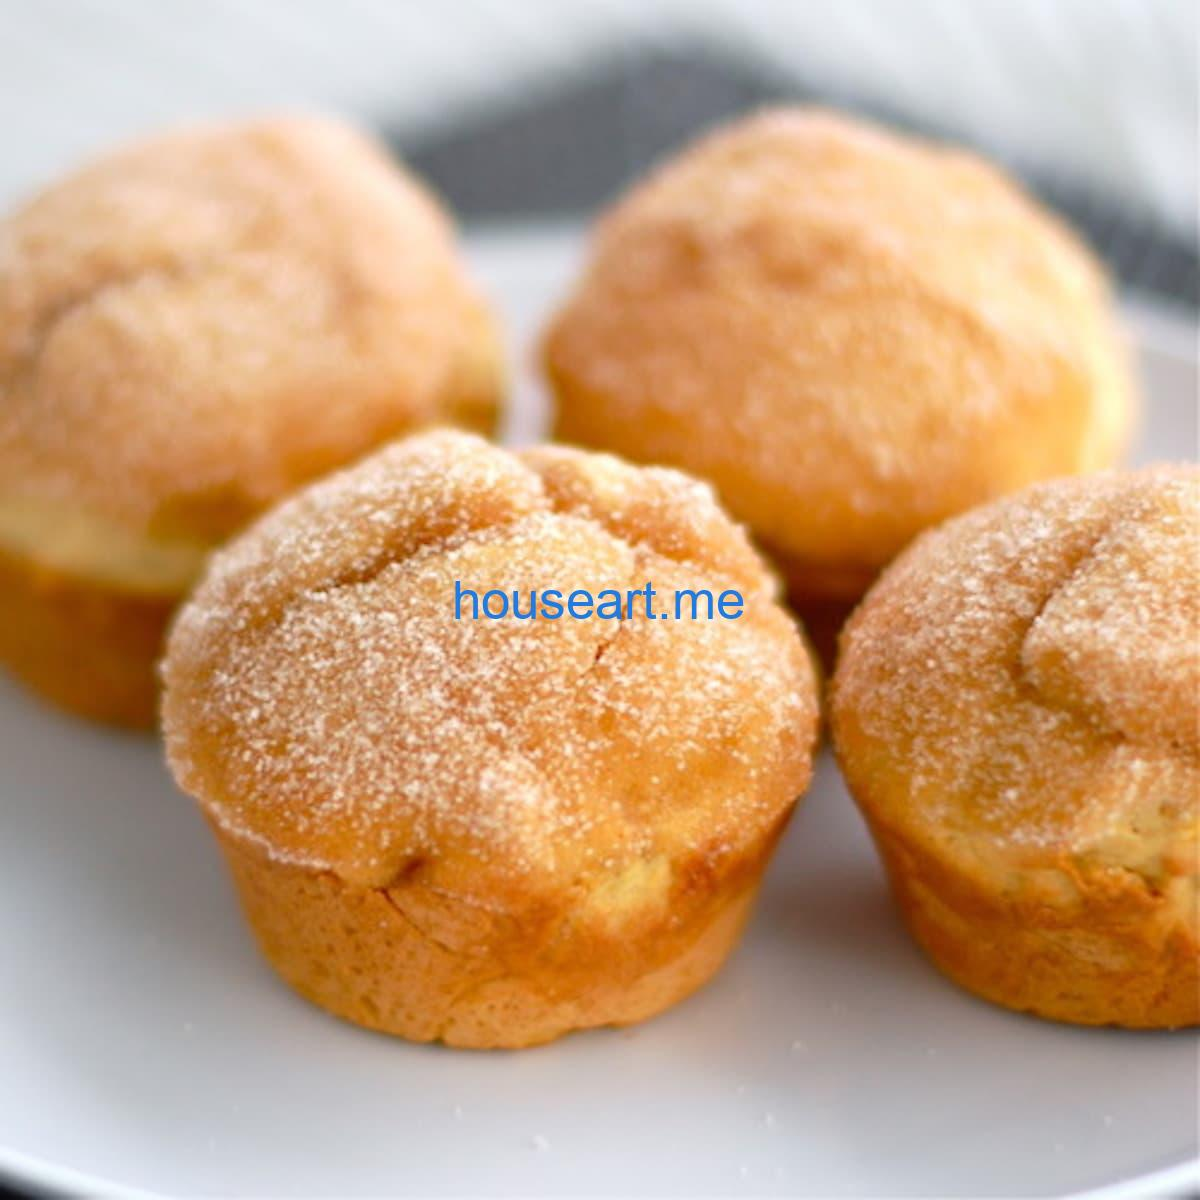 Four sugar-dusted sweet potato muffins.